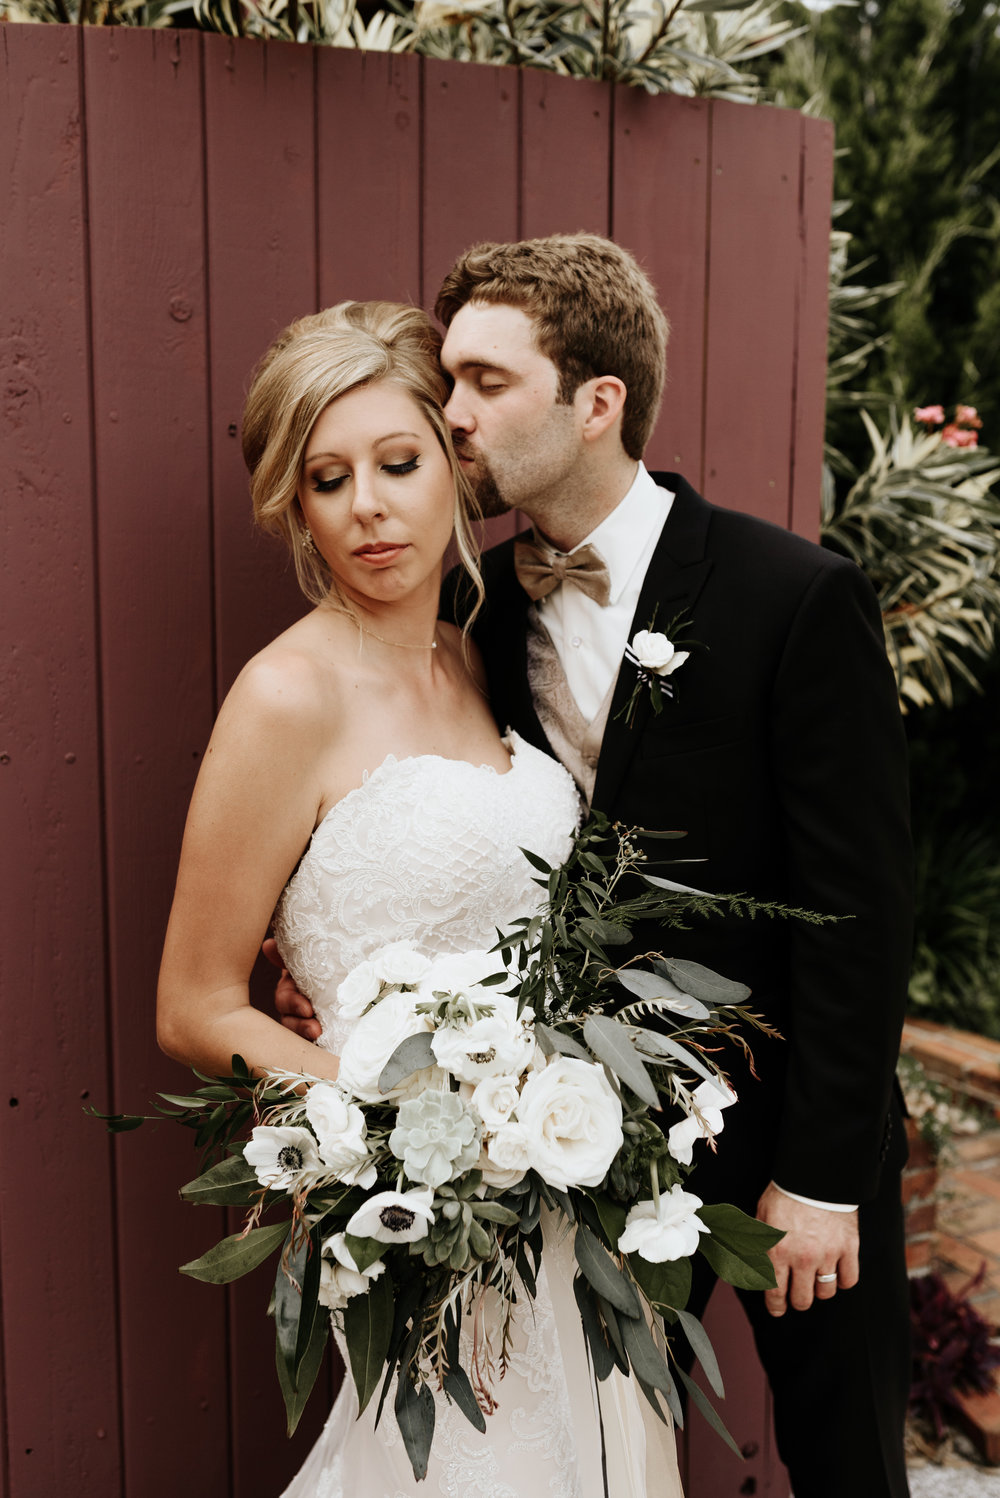 Mandy-Brad-Wedding-Previews-0740.jpg